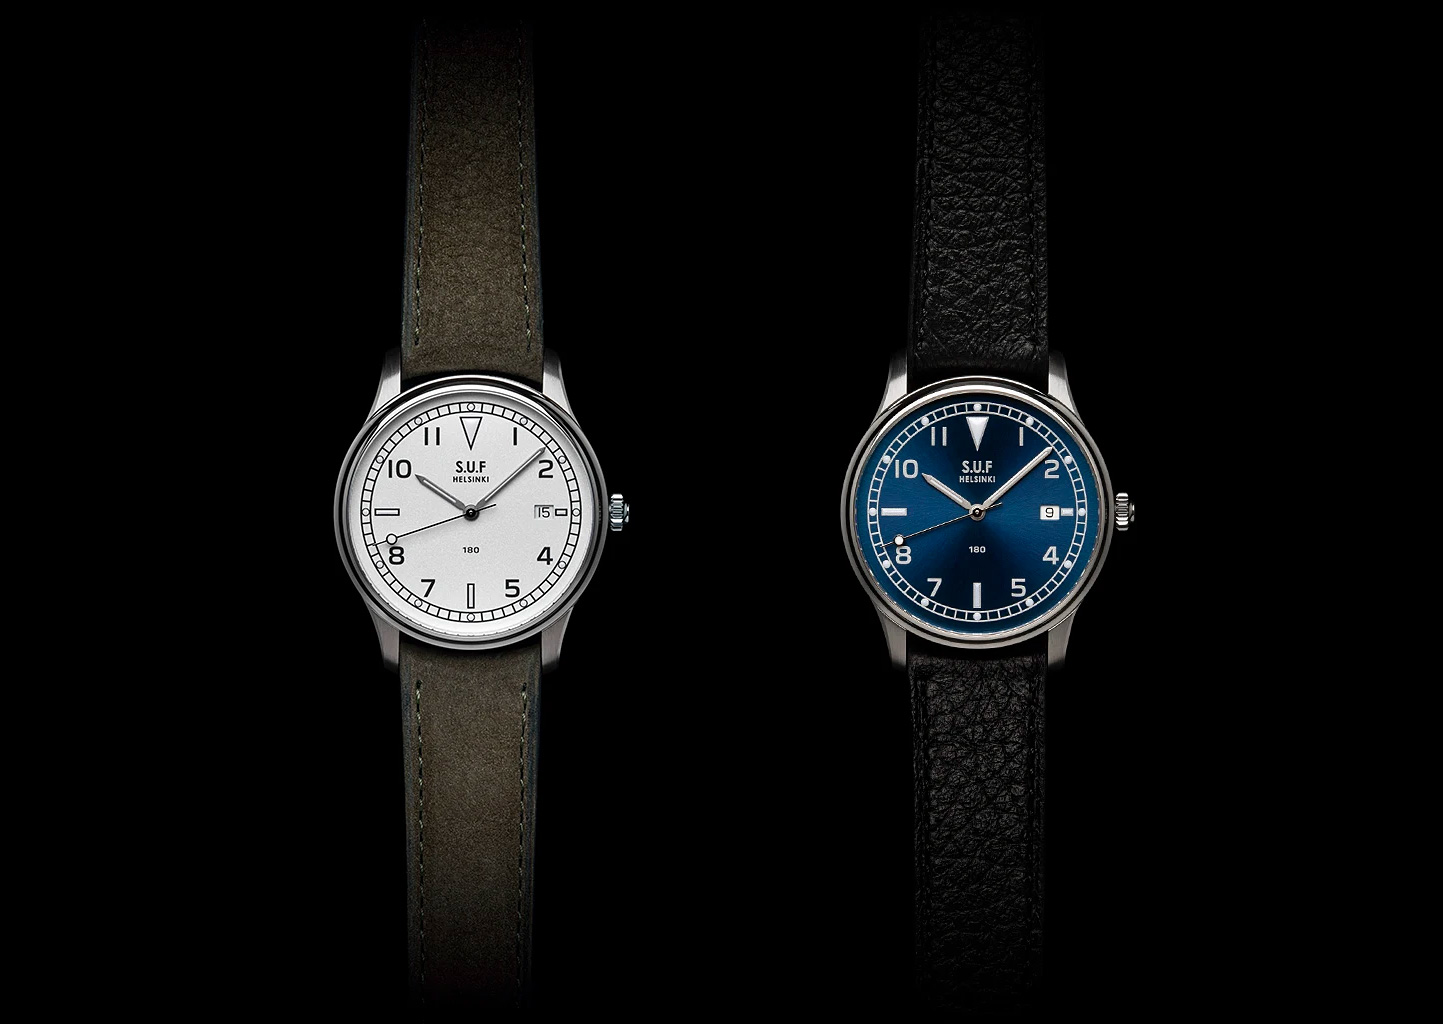 S.U.F. Introduces Limited Edition 180 Field Watch at werd.com